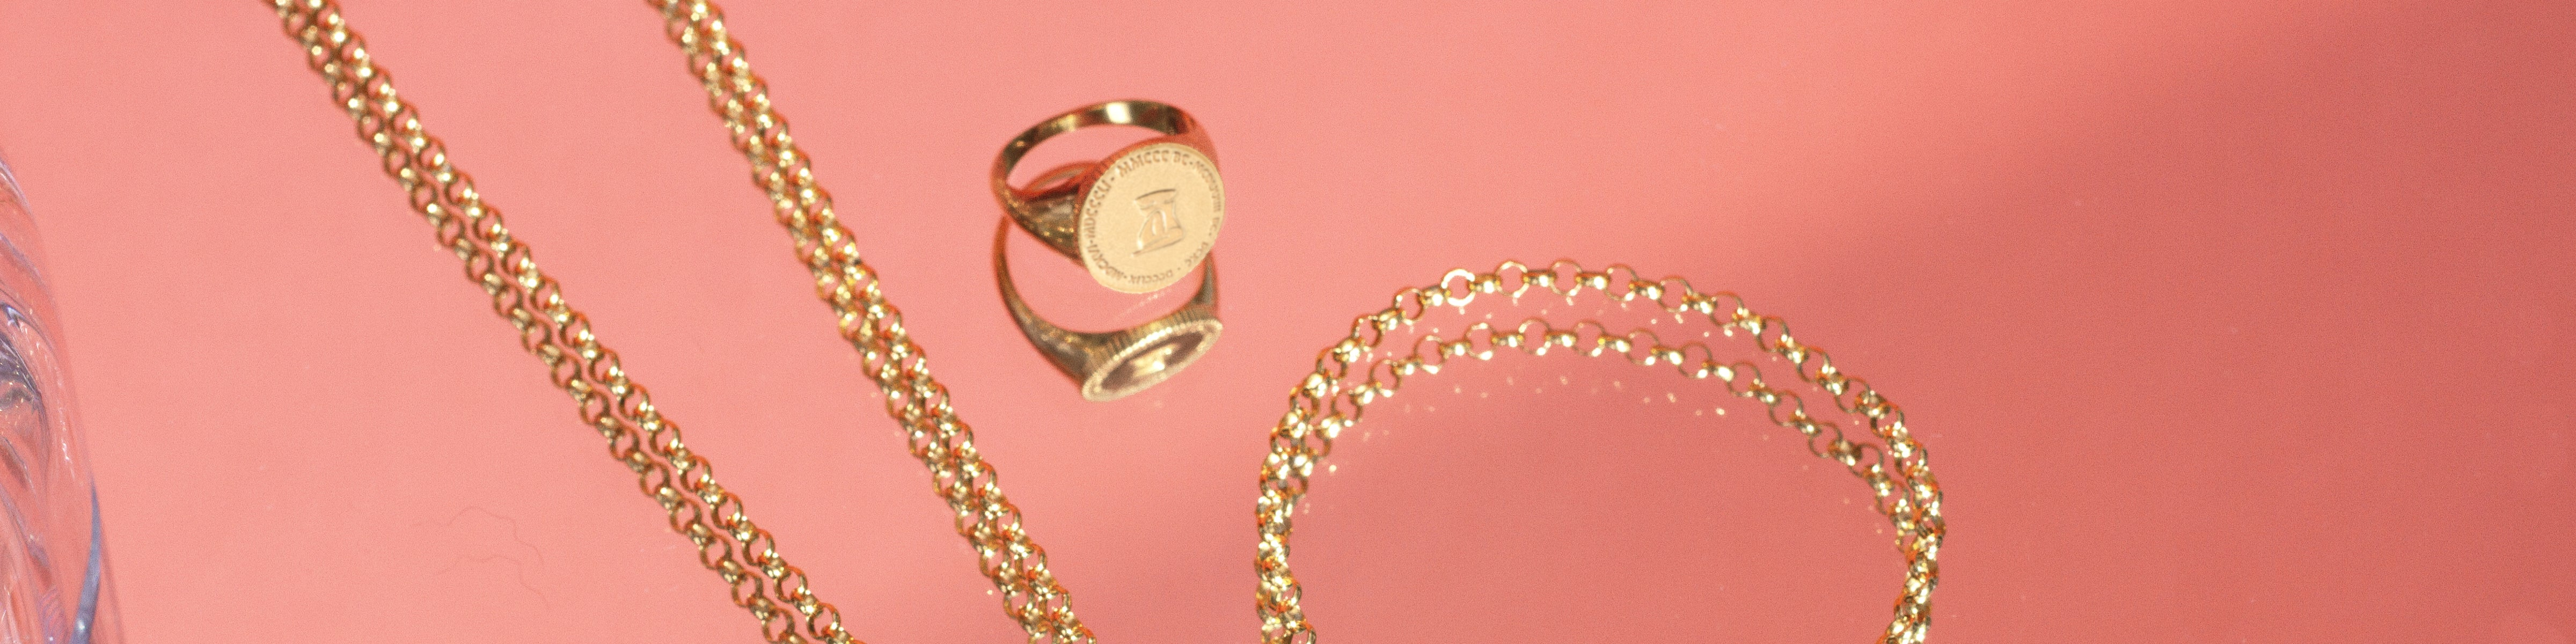 THE FEMME COIN CAPSULE